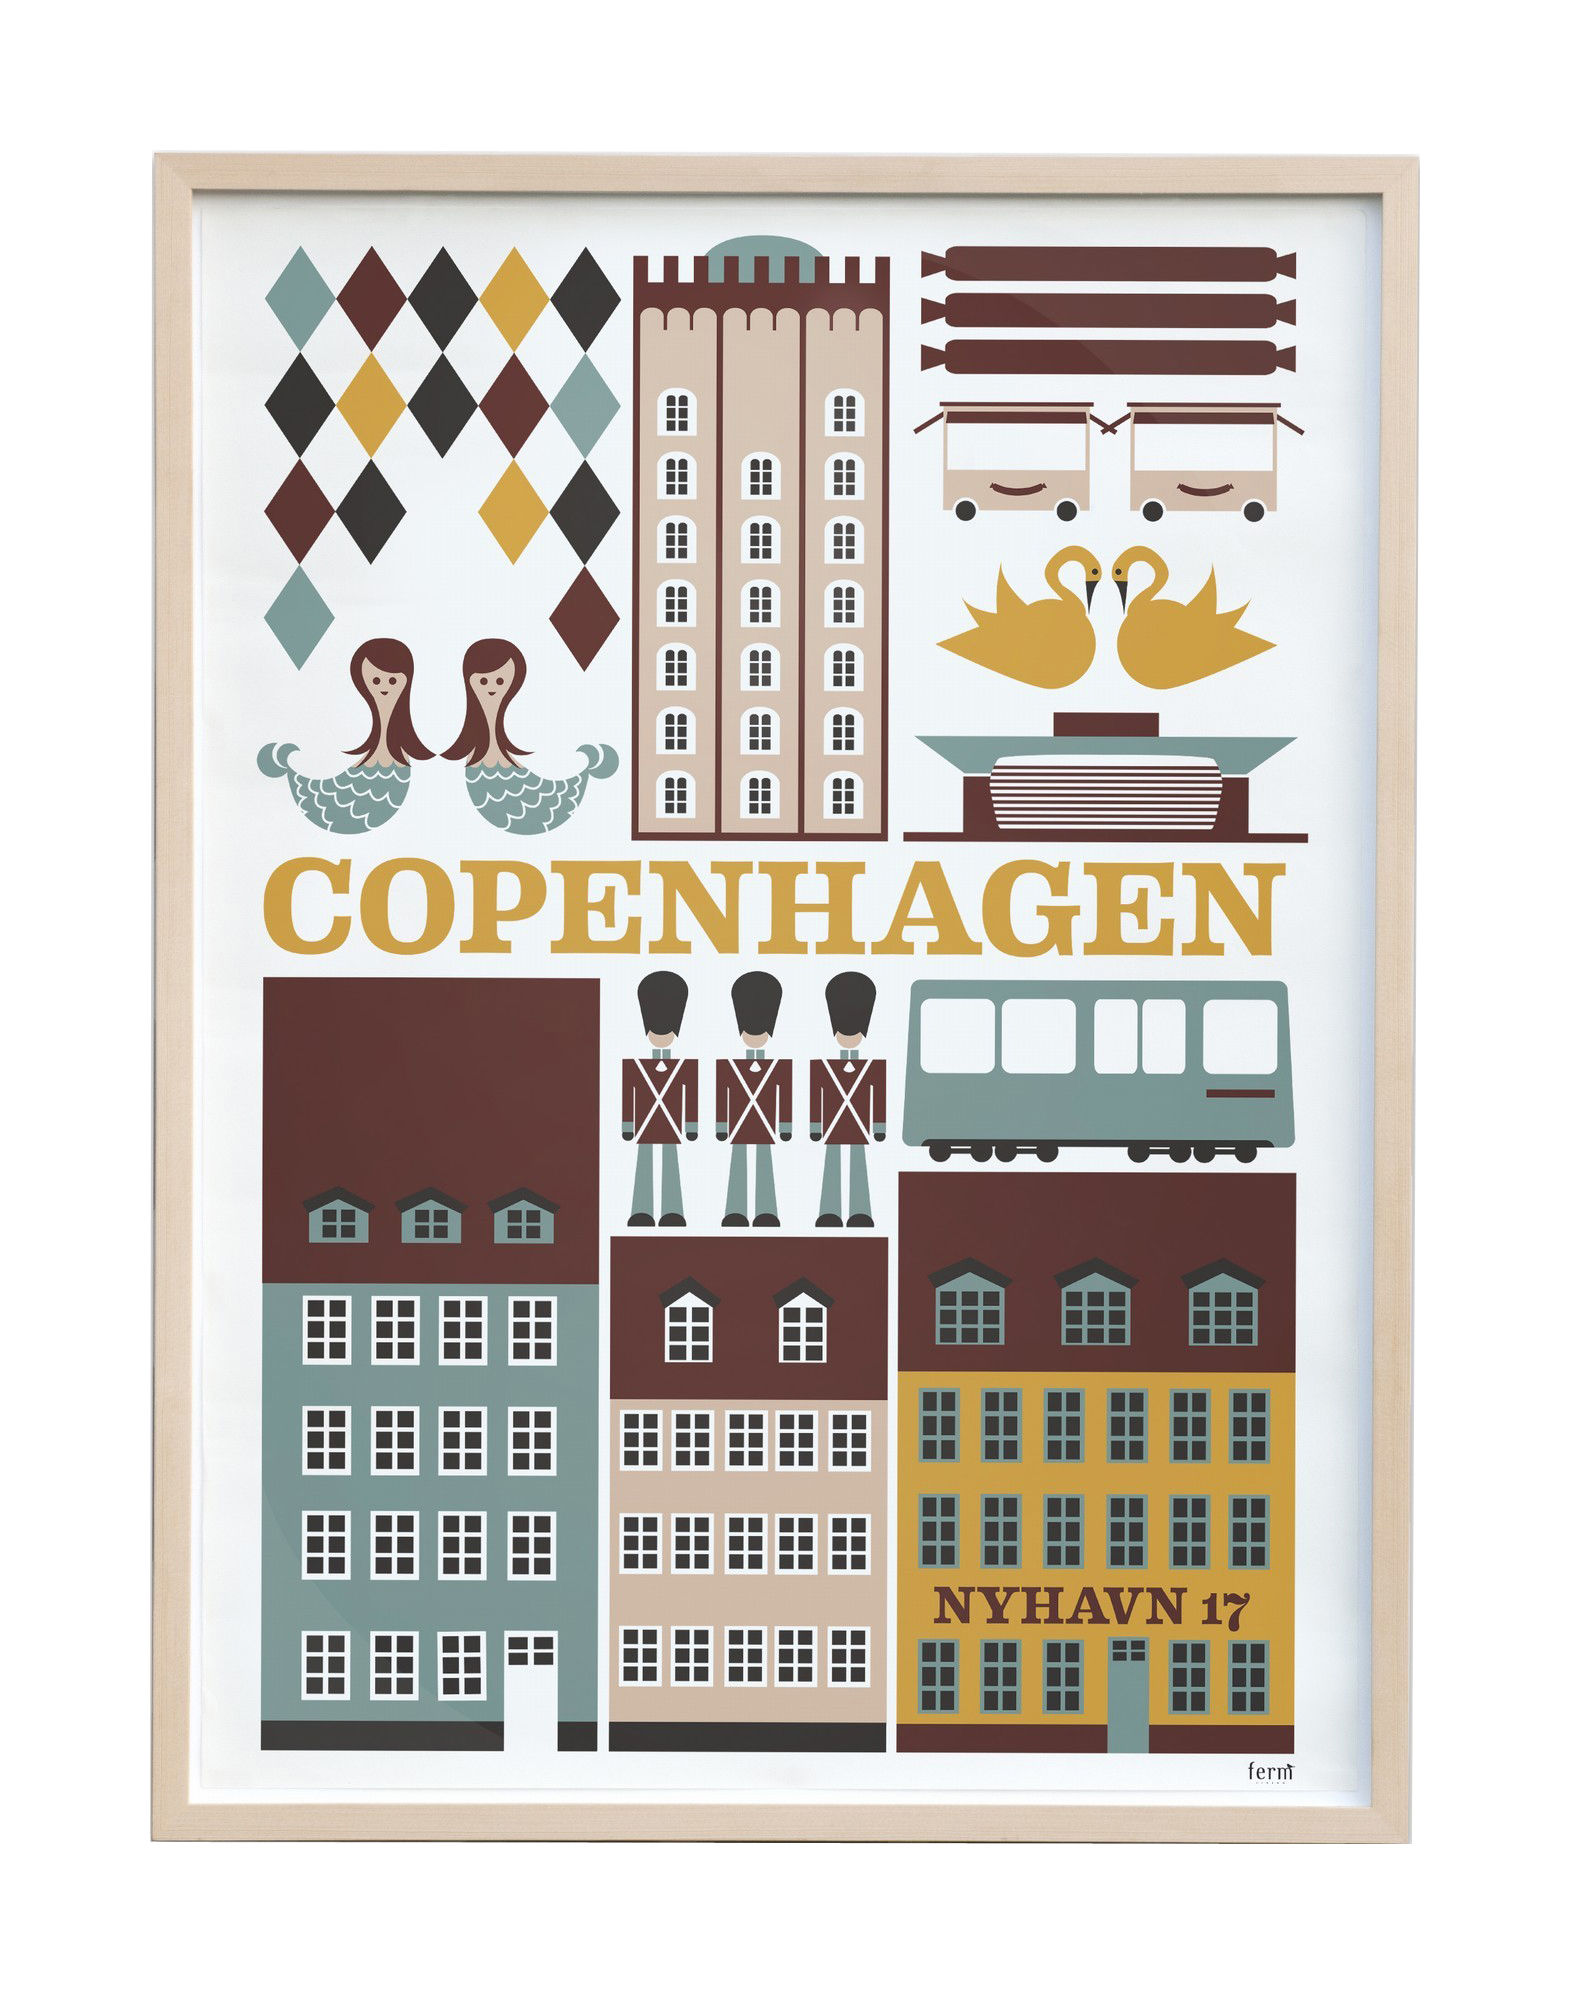 copenhagen poster 30 x 42 cm 29 7 x 42 cm multicoloured by ferm living. Black Bedroom Furniture Sets. Home Design Ideas